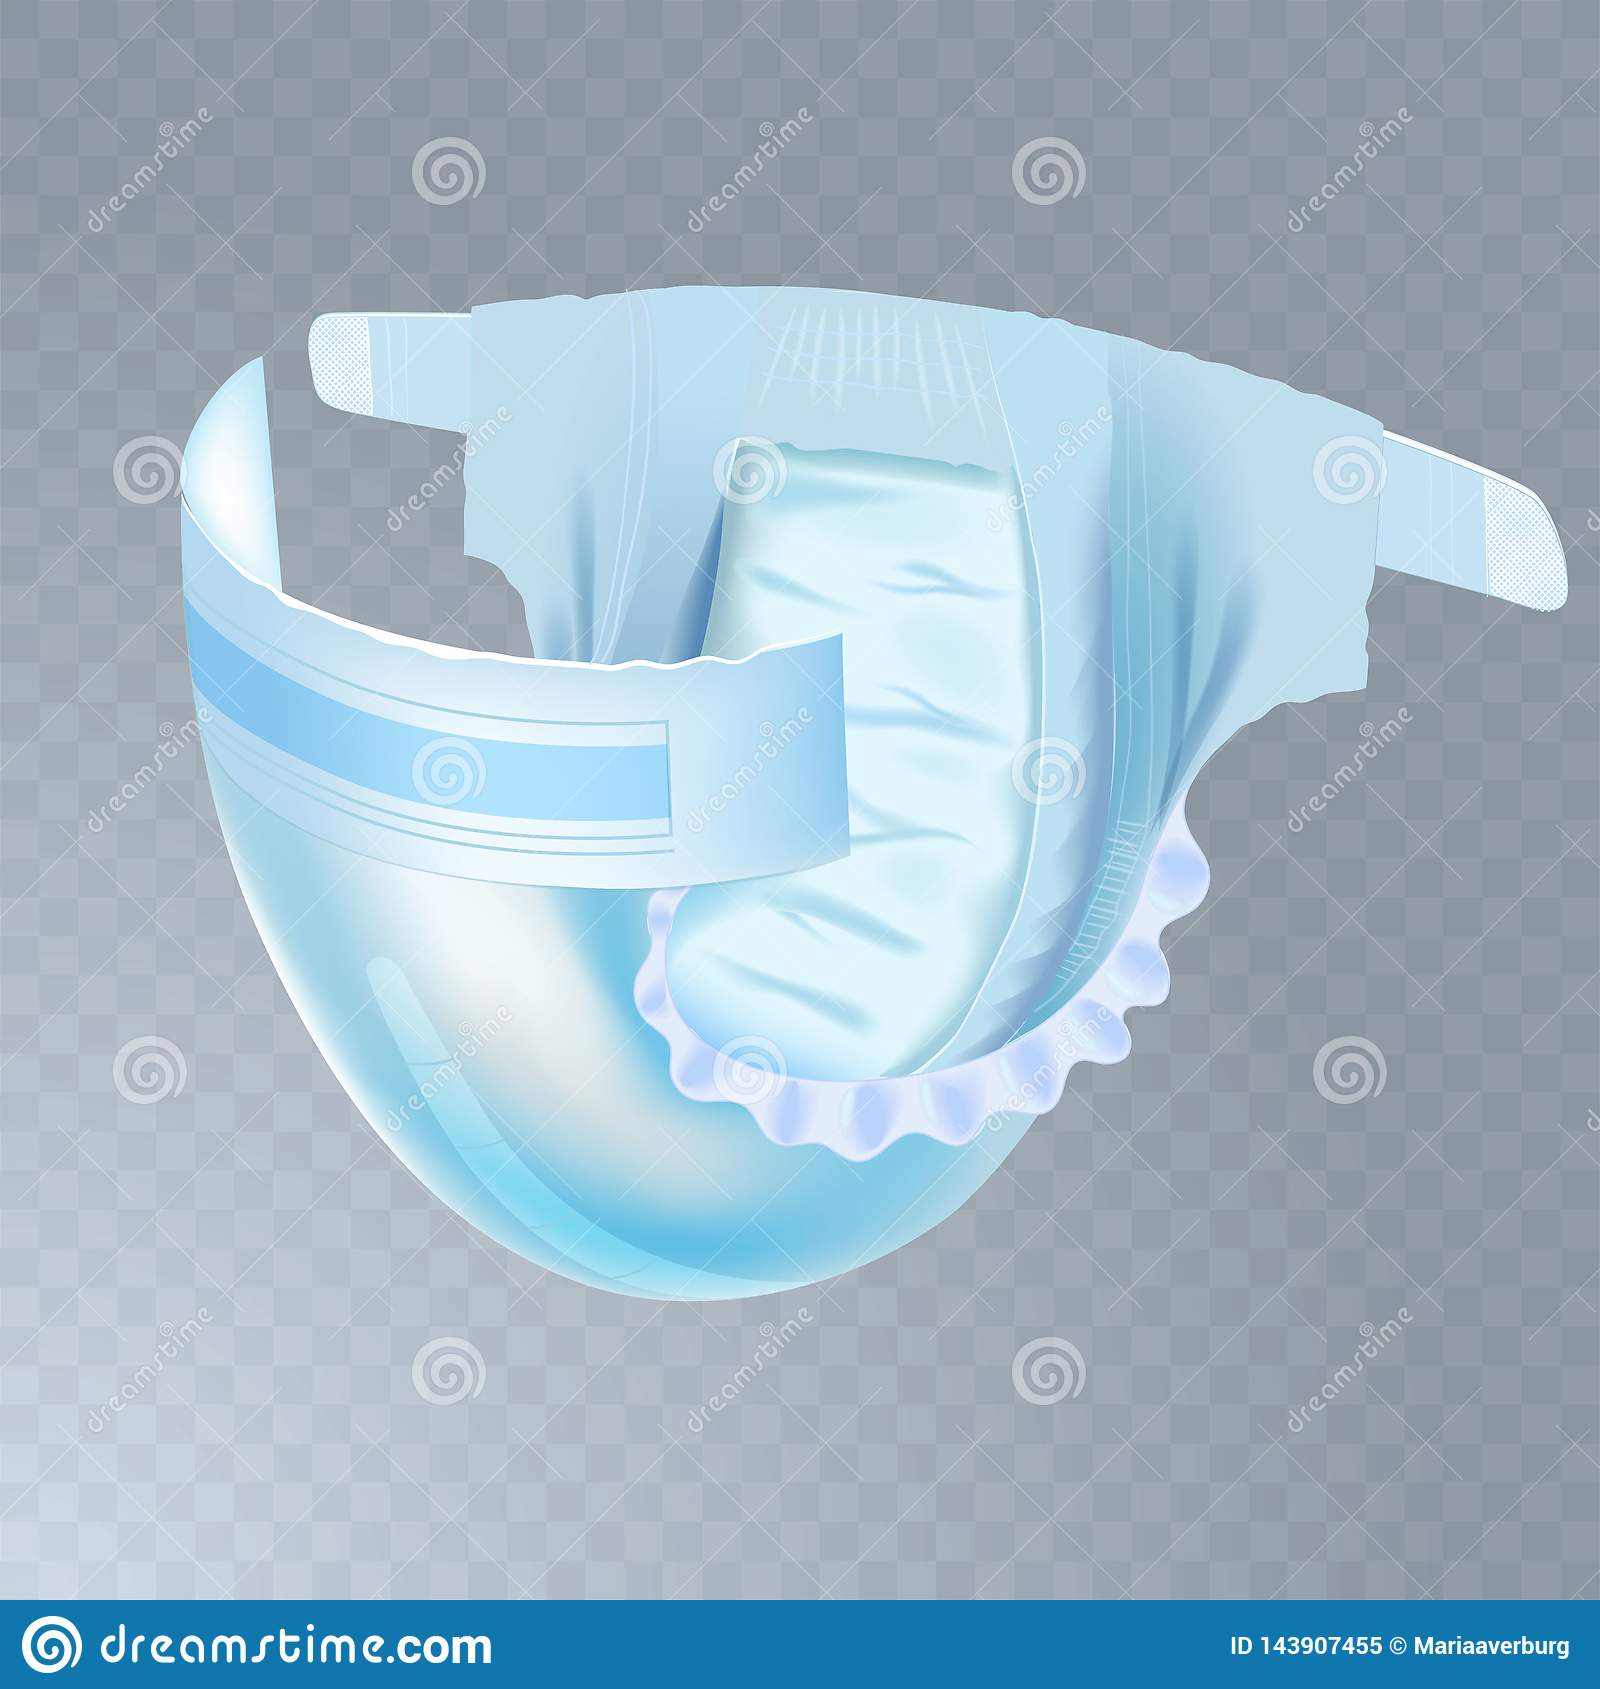 Baby diaper isolated on transparent background. Realistic vector illustration for diapers packs, and other babies